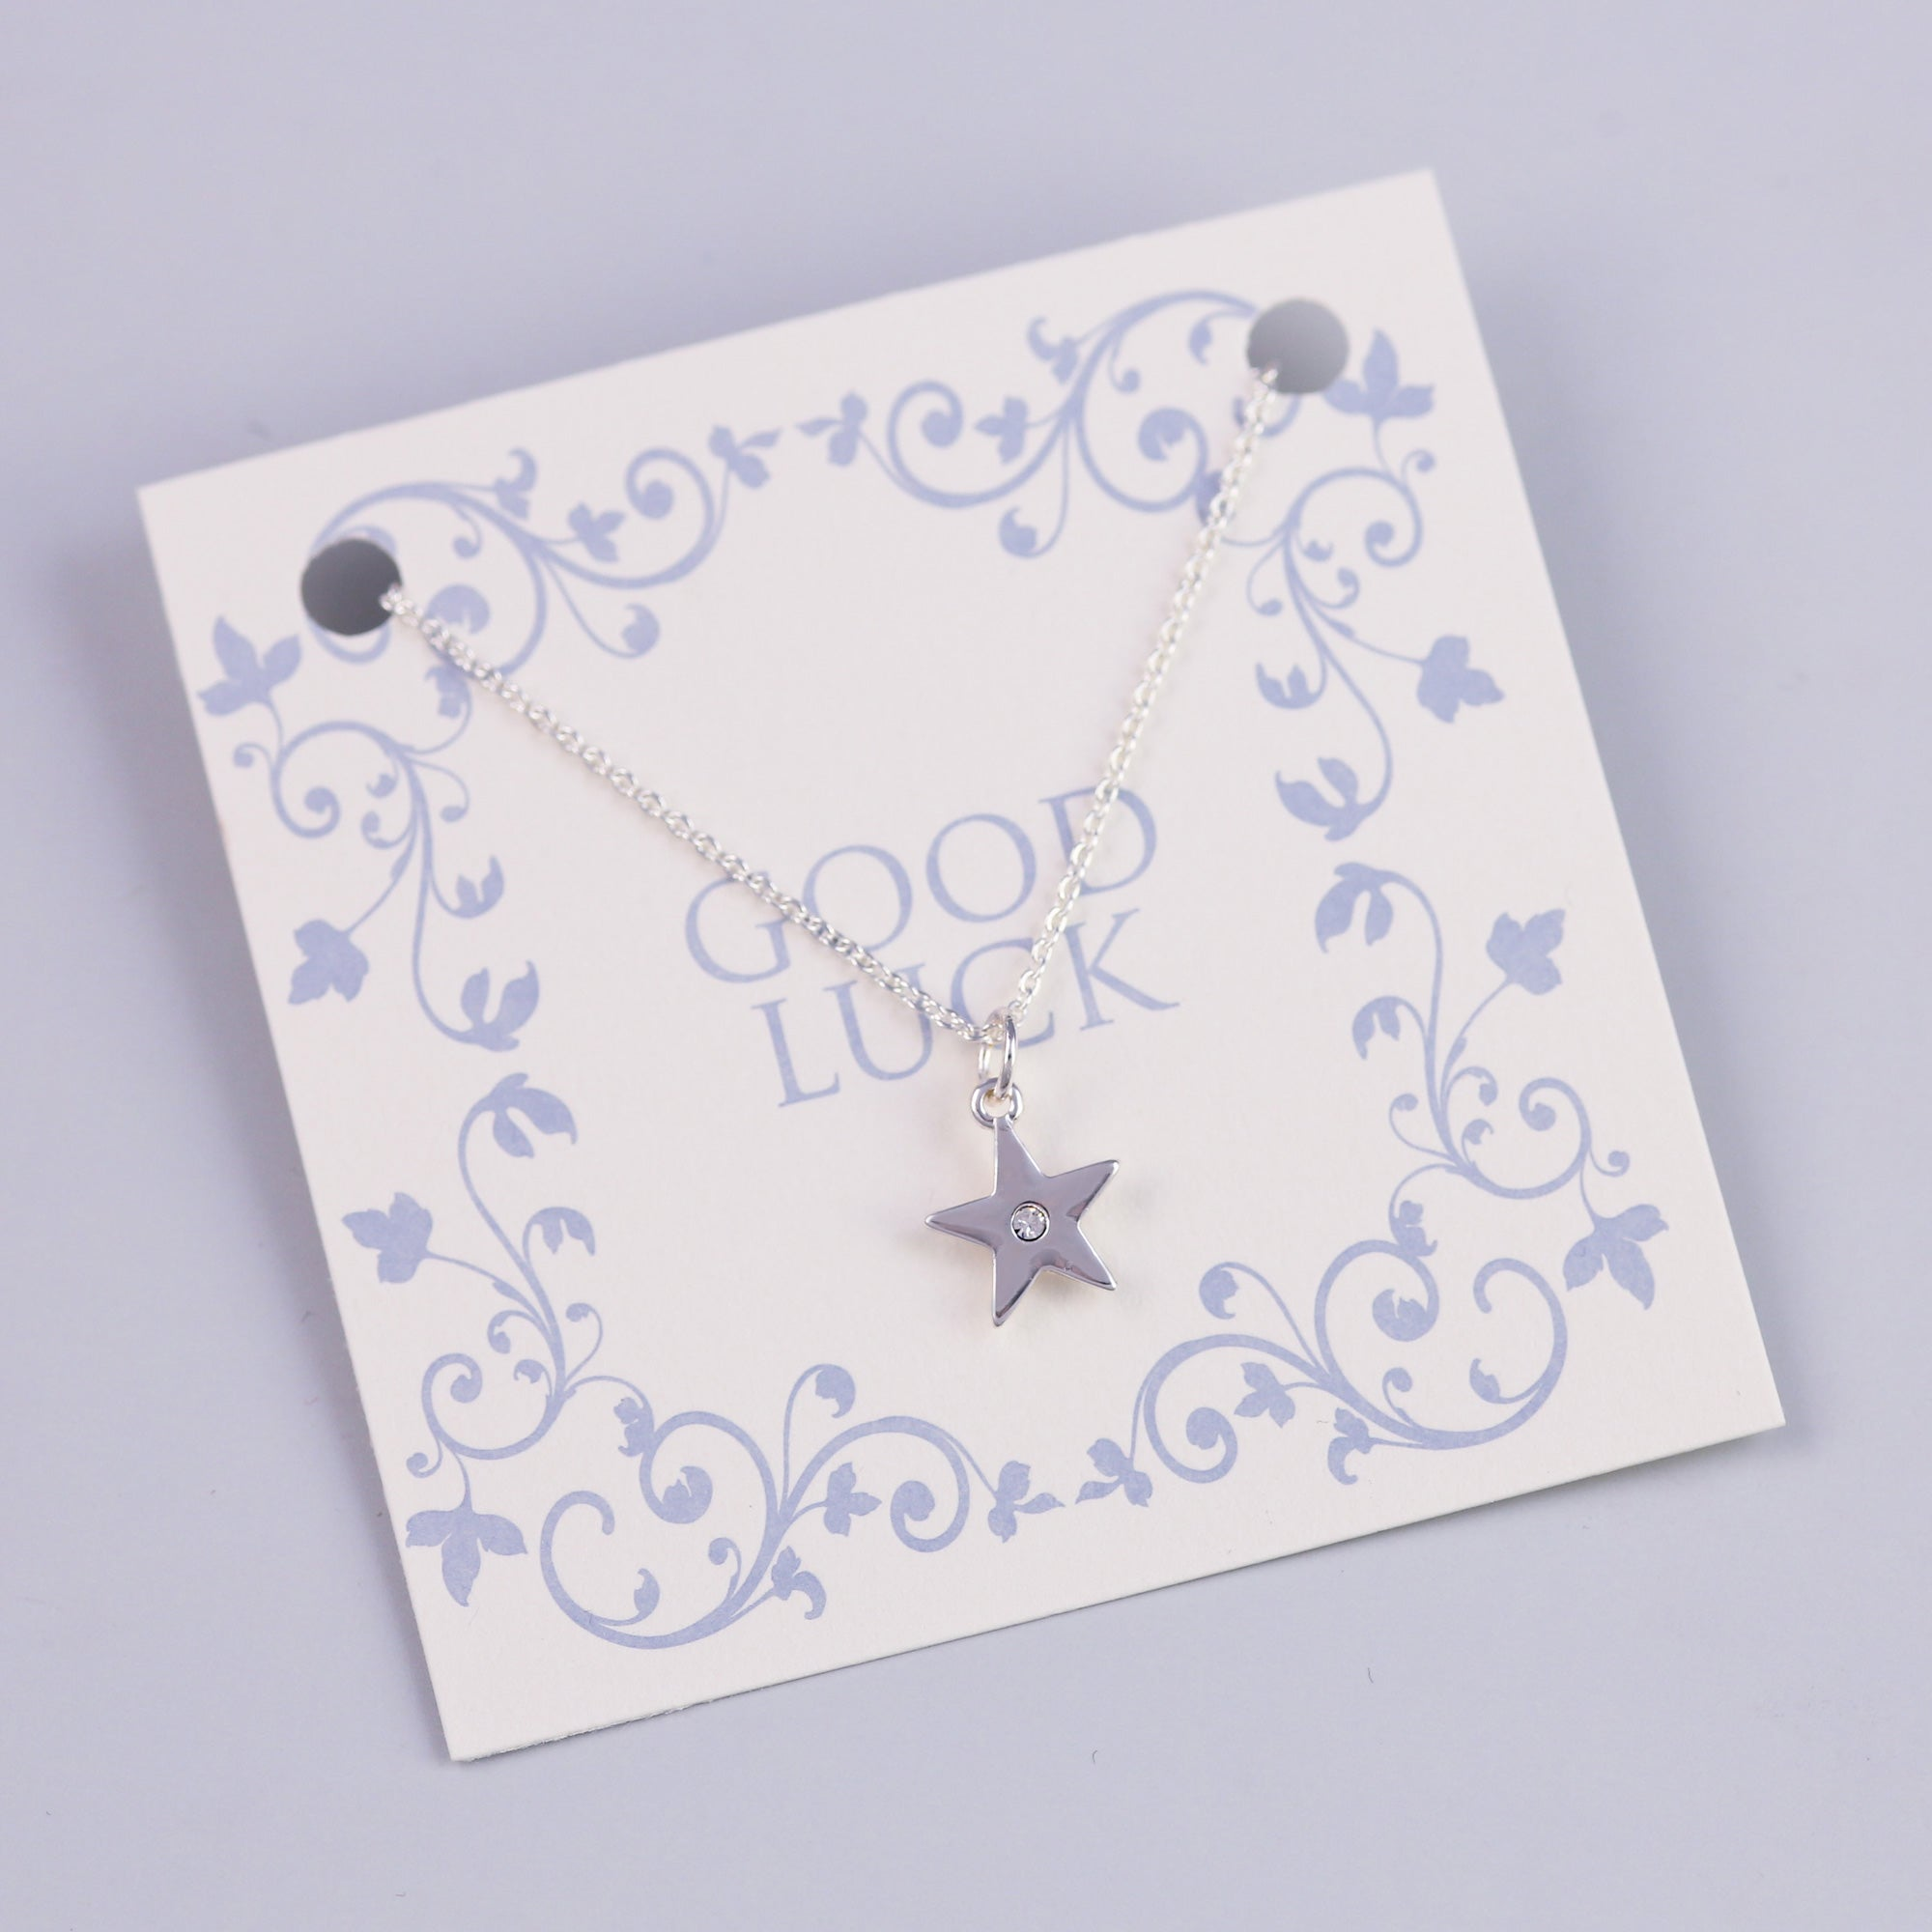 Good Luck Sentiment Card with Silver Crystal Star